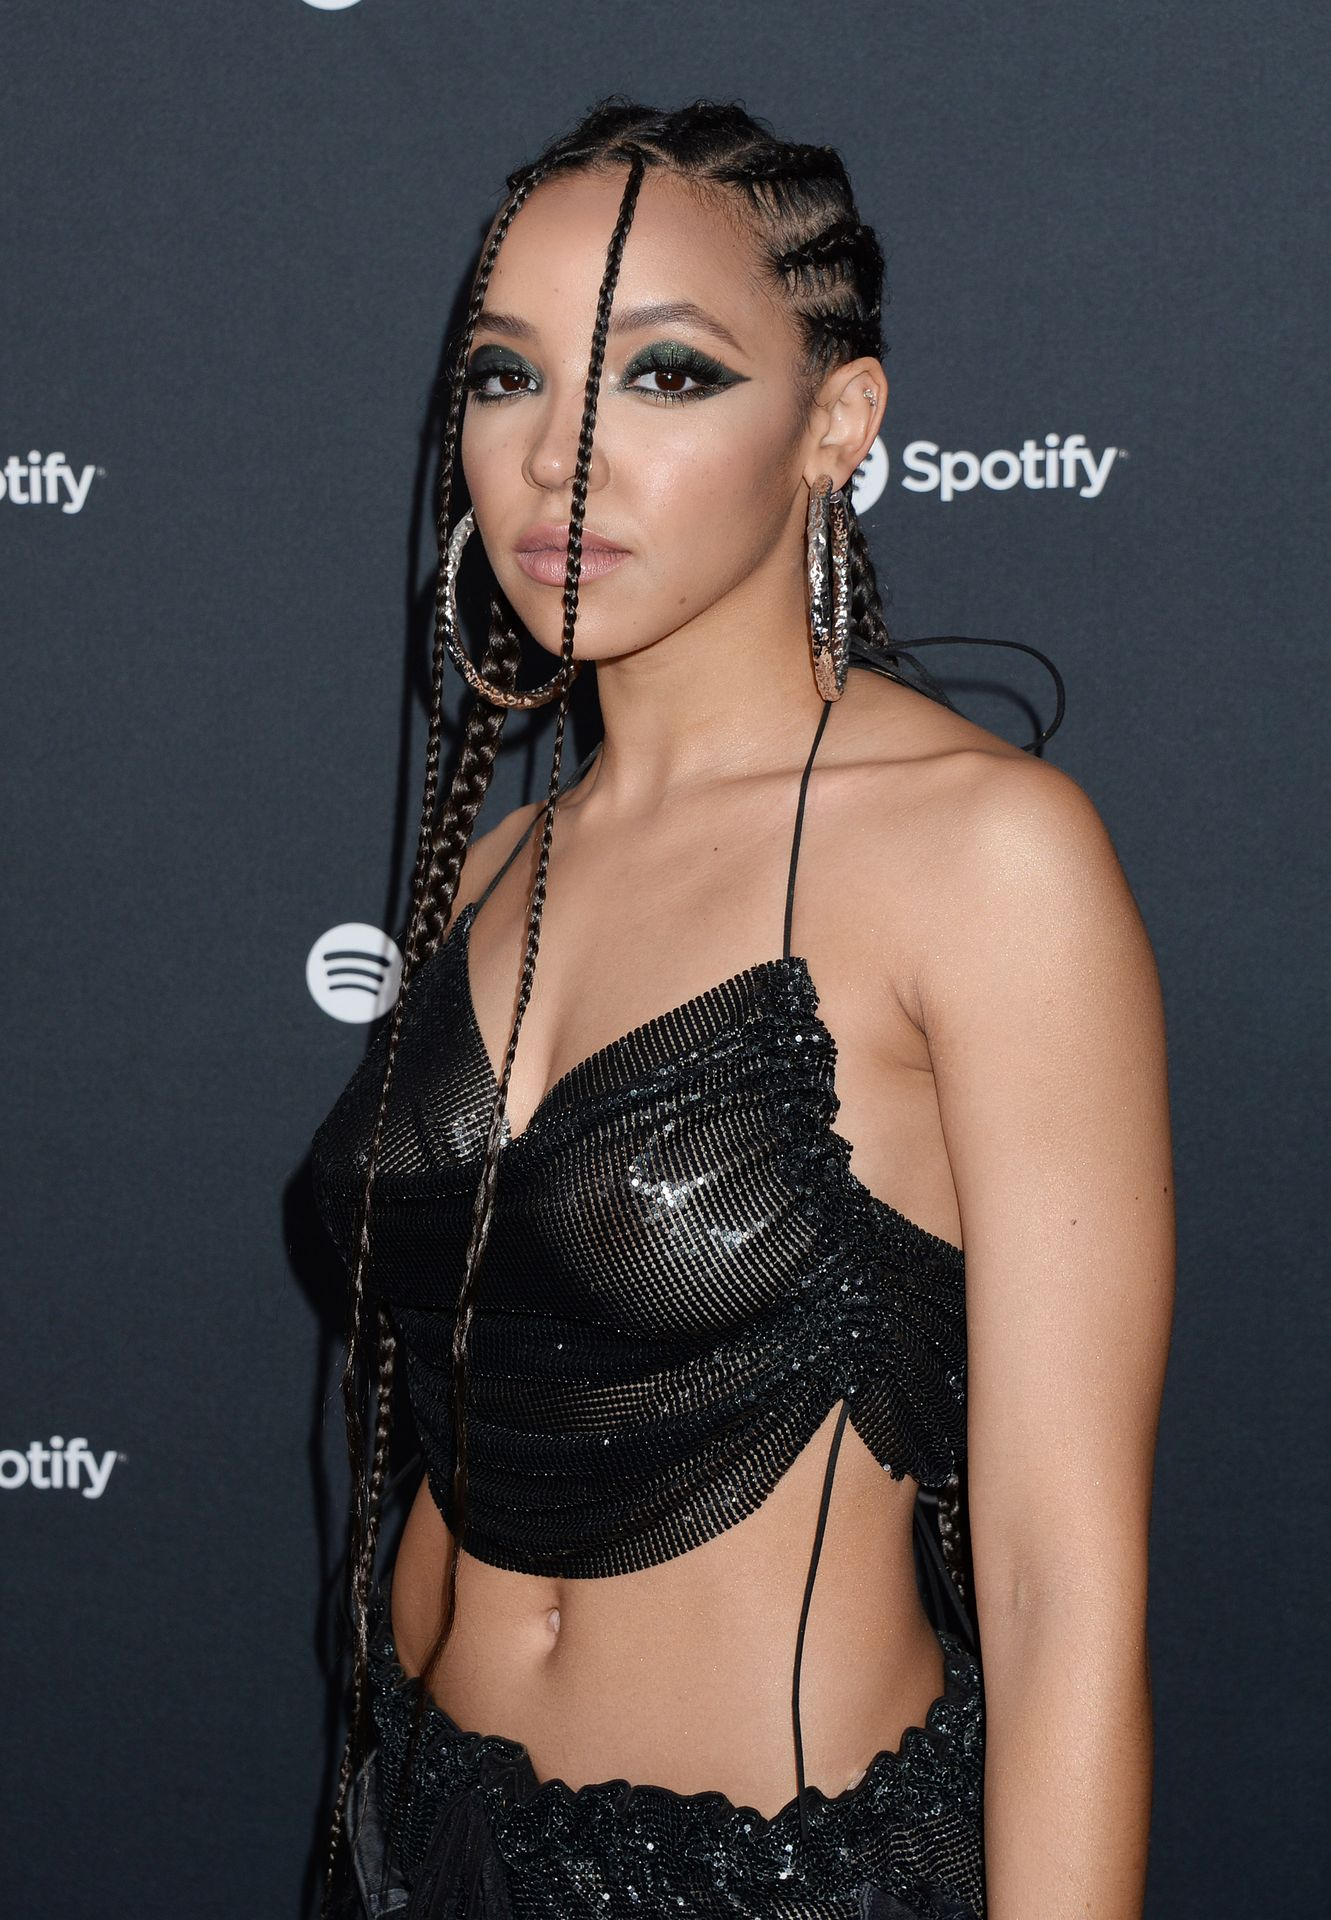 Tinashe Flaunts Her Tits At The Spotify Best New Artist Party 0008